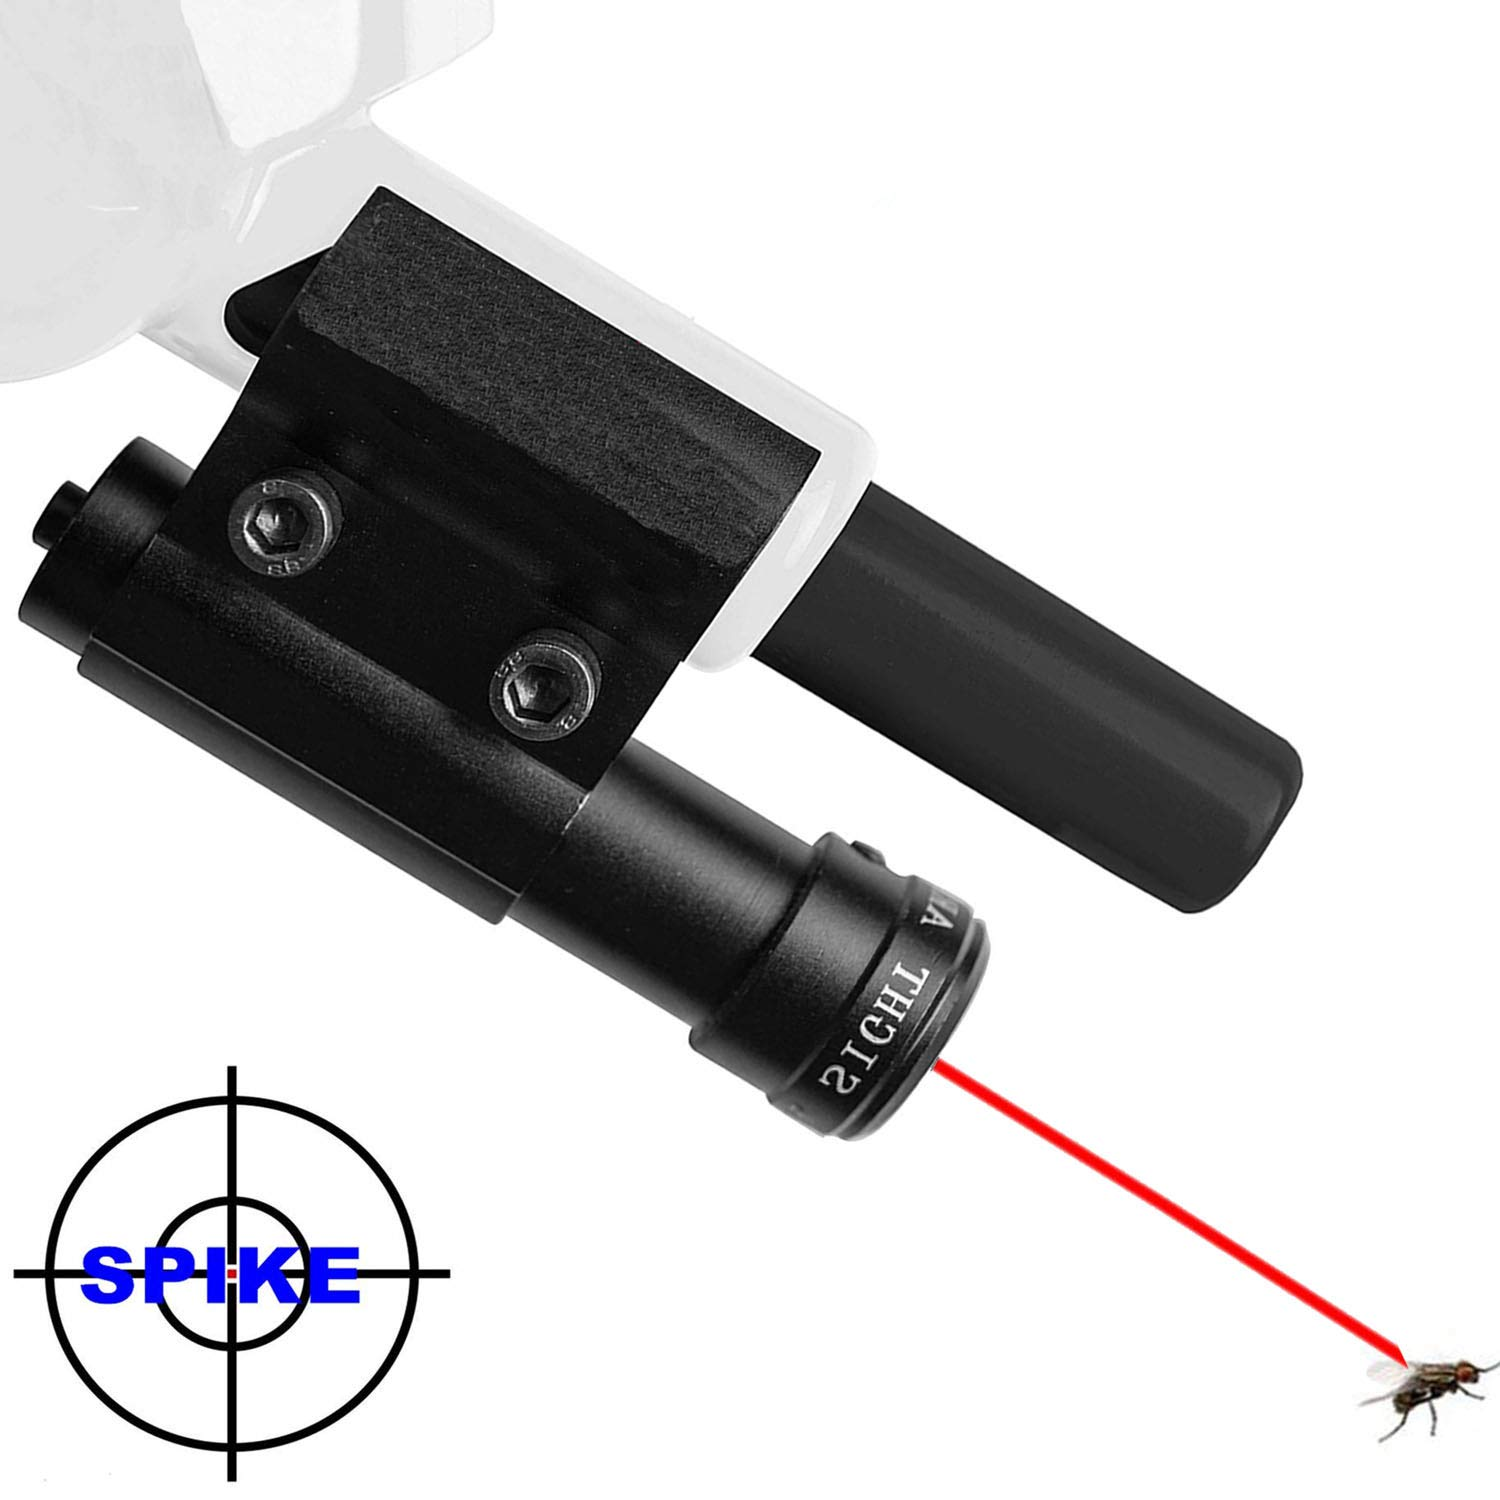 ADAFA.Z Laser Sight Beam for Bug & A Salt Shotgun Version 2.0, Fit All Fly Killer Aiming Scope, Lawn & Garden Insect Eradication Airsoft BB Pump Add-On Accessories